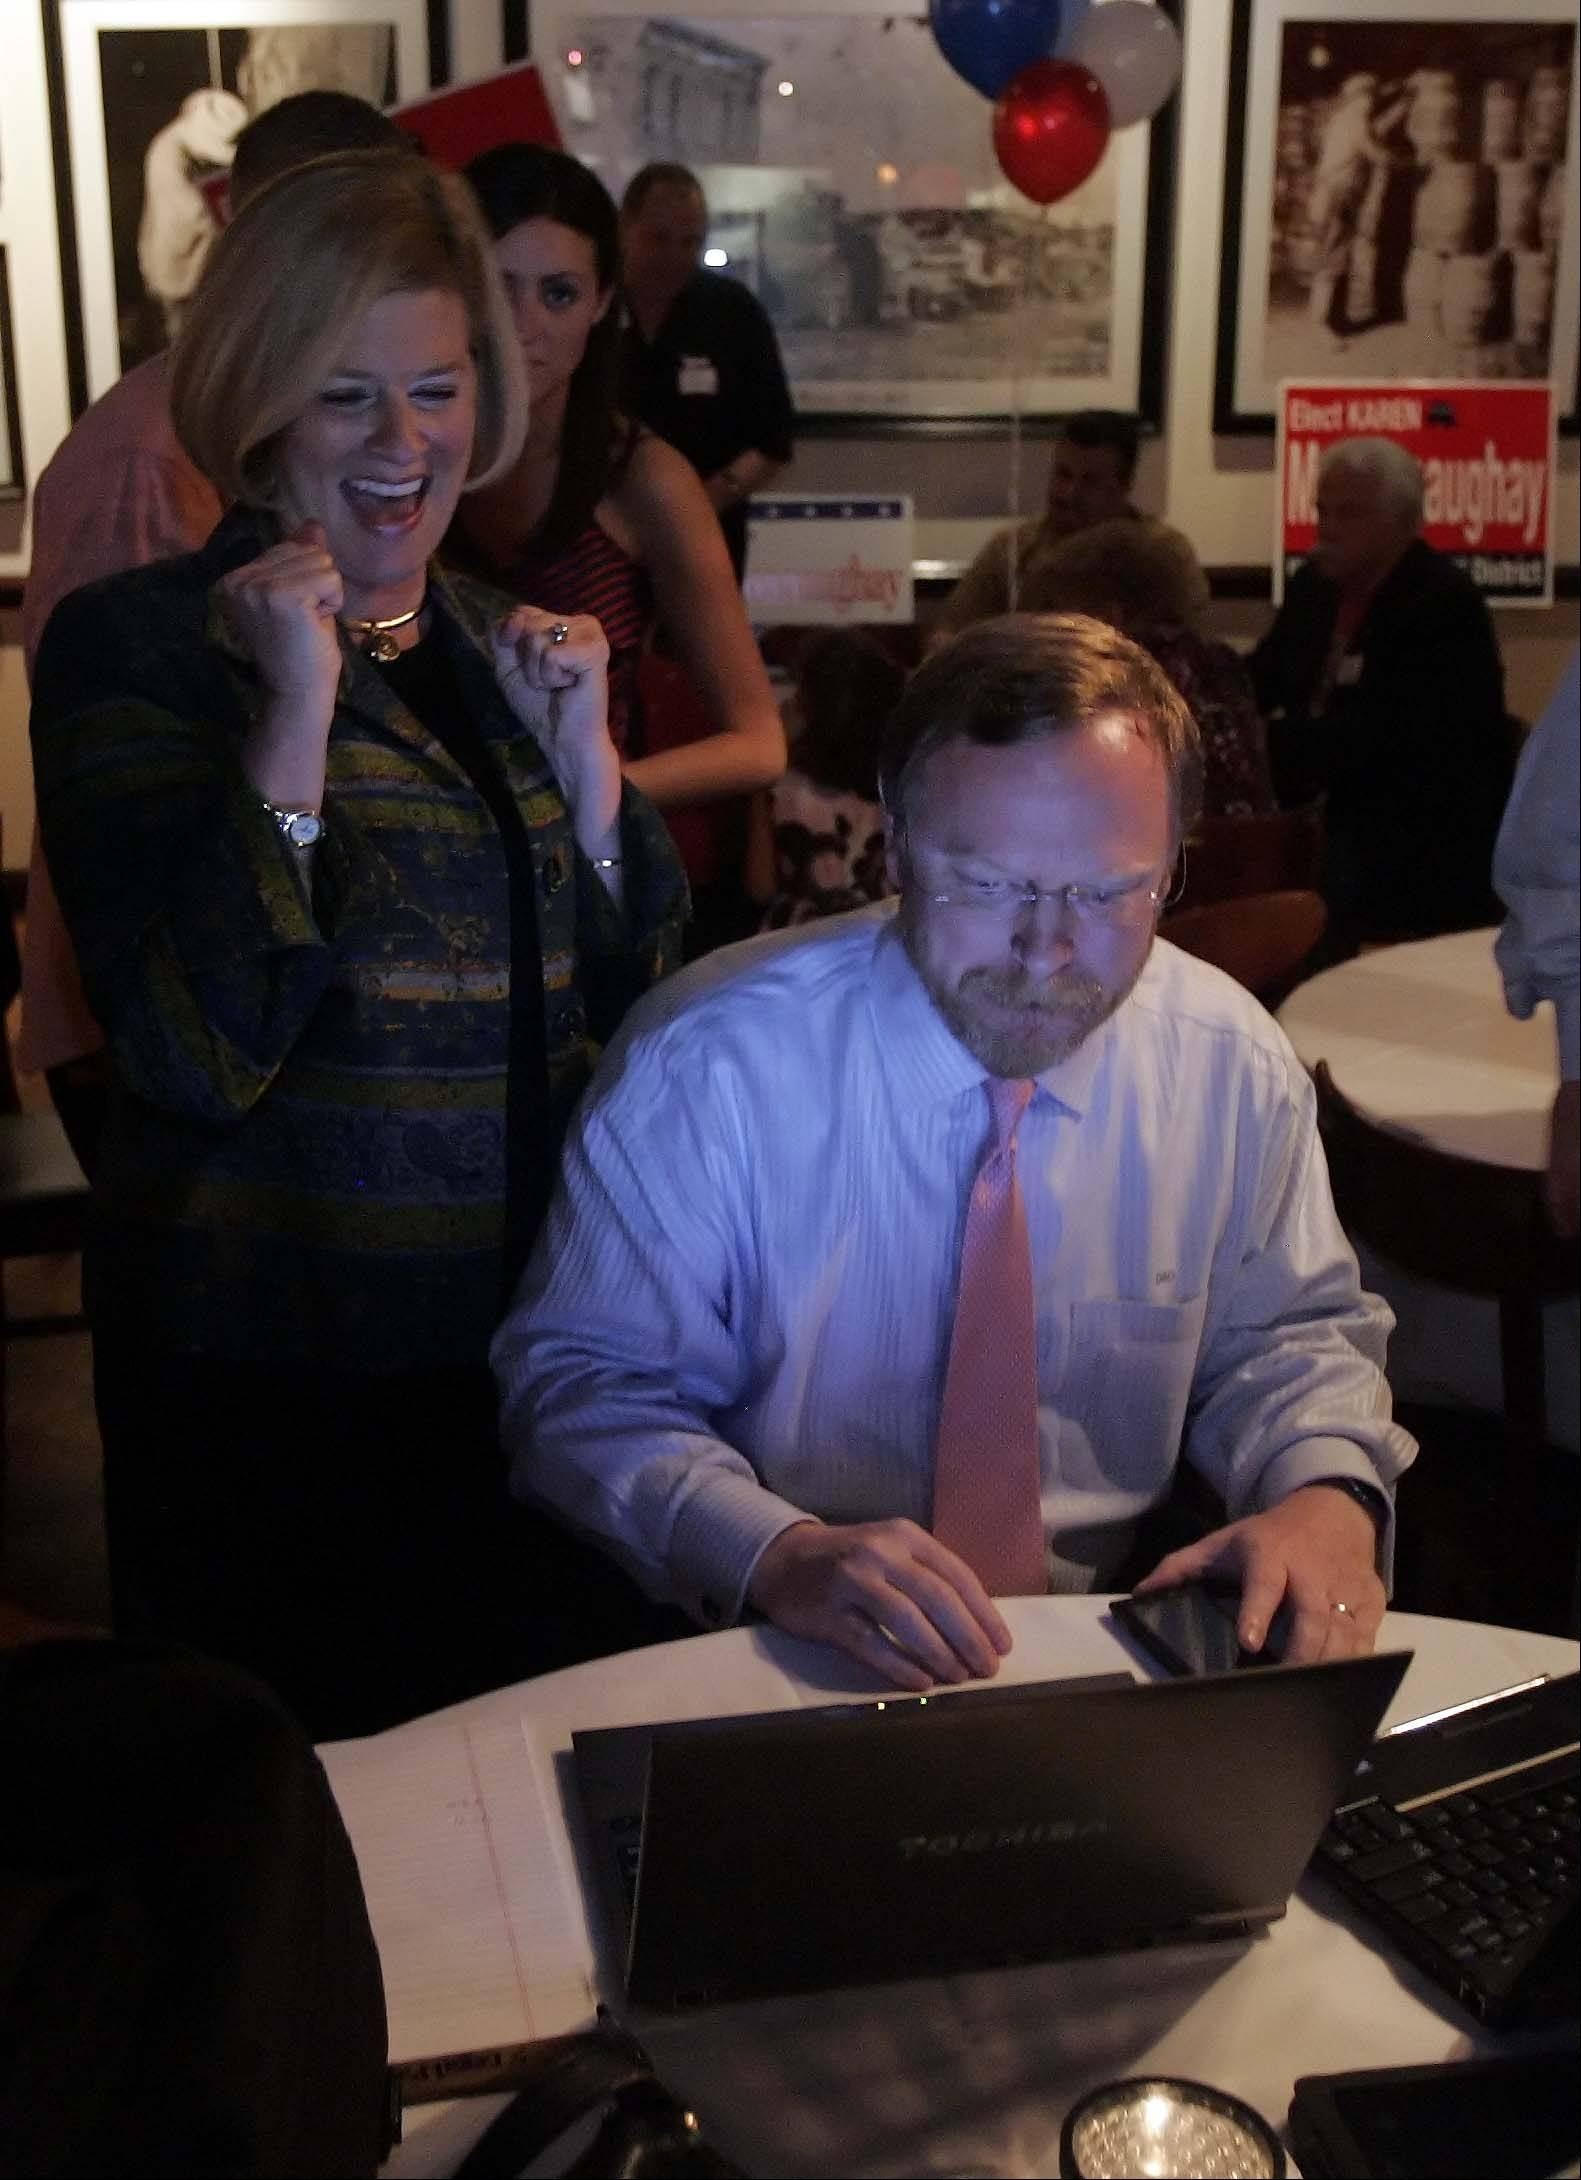 BRIAN HILL/bhill@dailyherald.comKaren McConnaughay watches results in the Republican primary for the 33rd Senate District at Emmetts in West Dundee March 20, 2012. Media liaison Doug O'Brien works the computers.